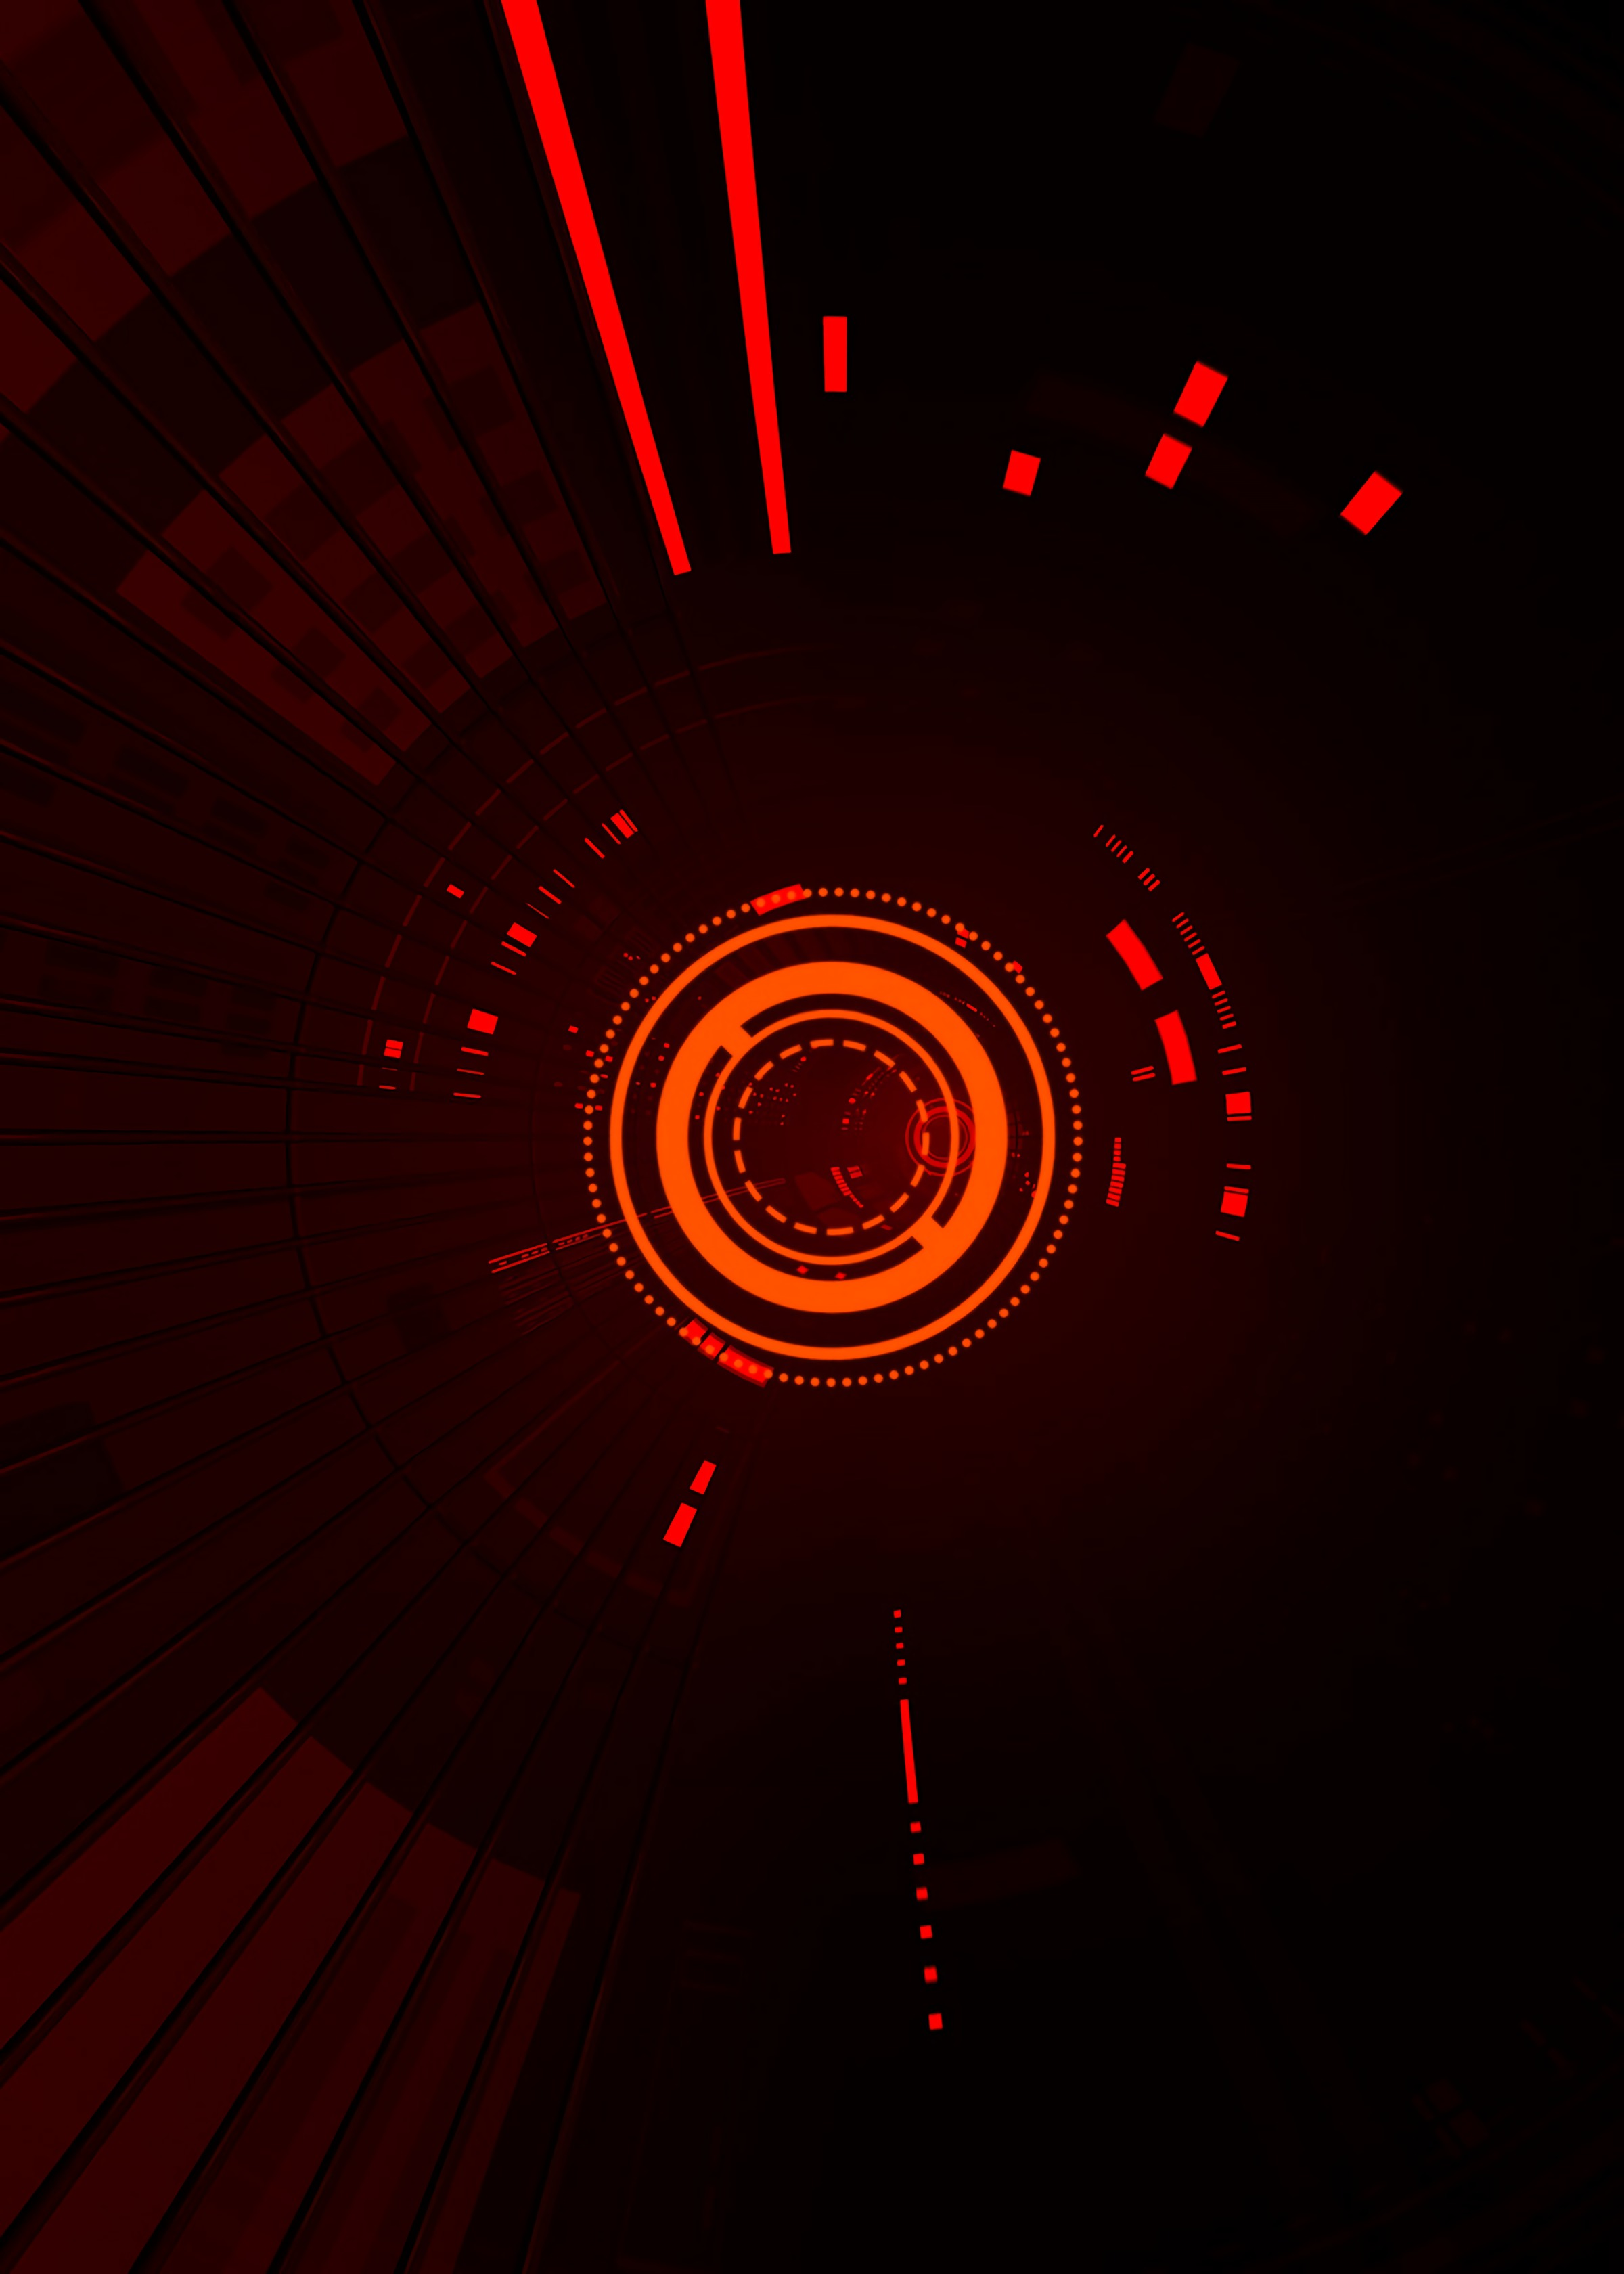 71619 download wallpaper Dark, Sci-Fi, Hologram, Circles, Lines, Points, Point, Scheme, Glow screensavers and pictures for free